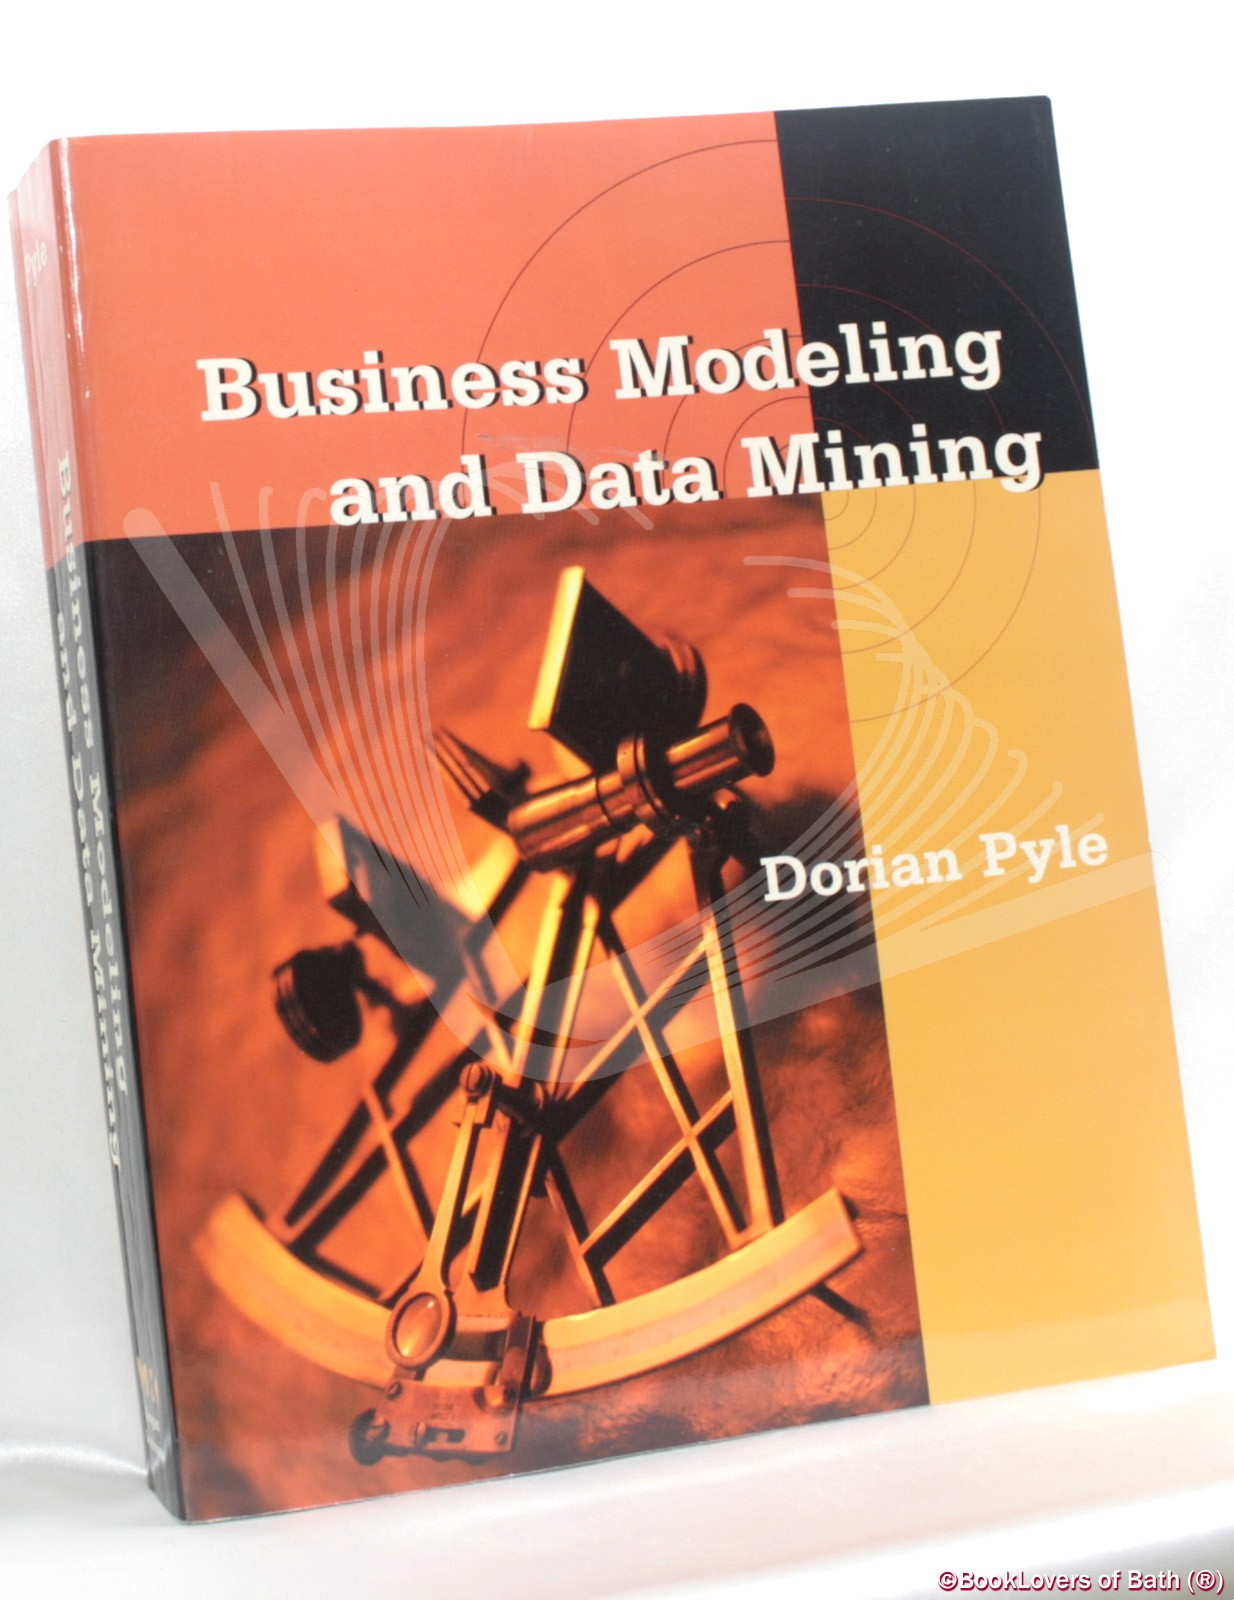 Business Modeling and Data Mining - Dorian Pyle